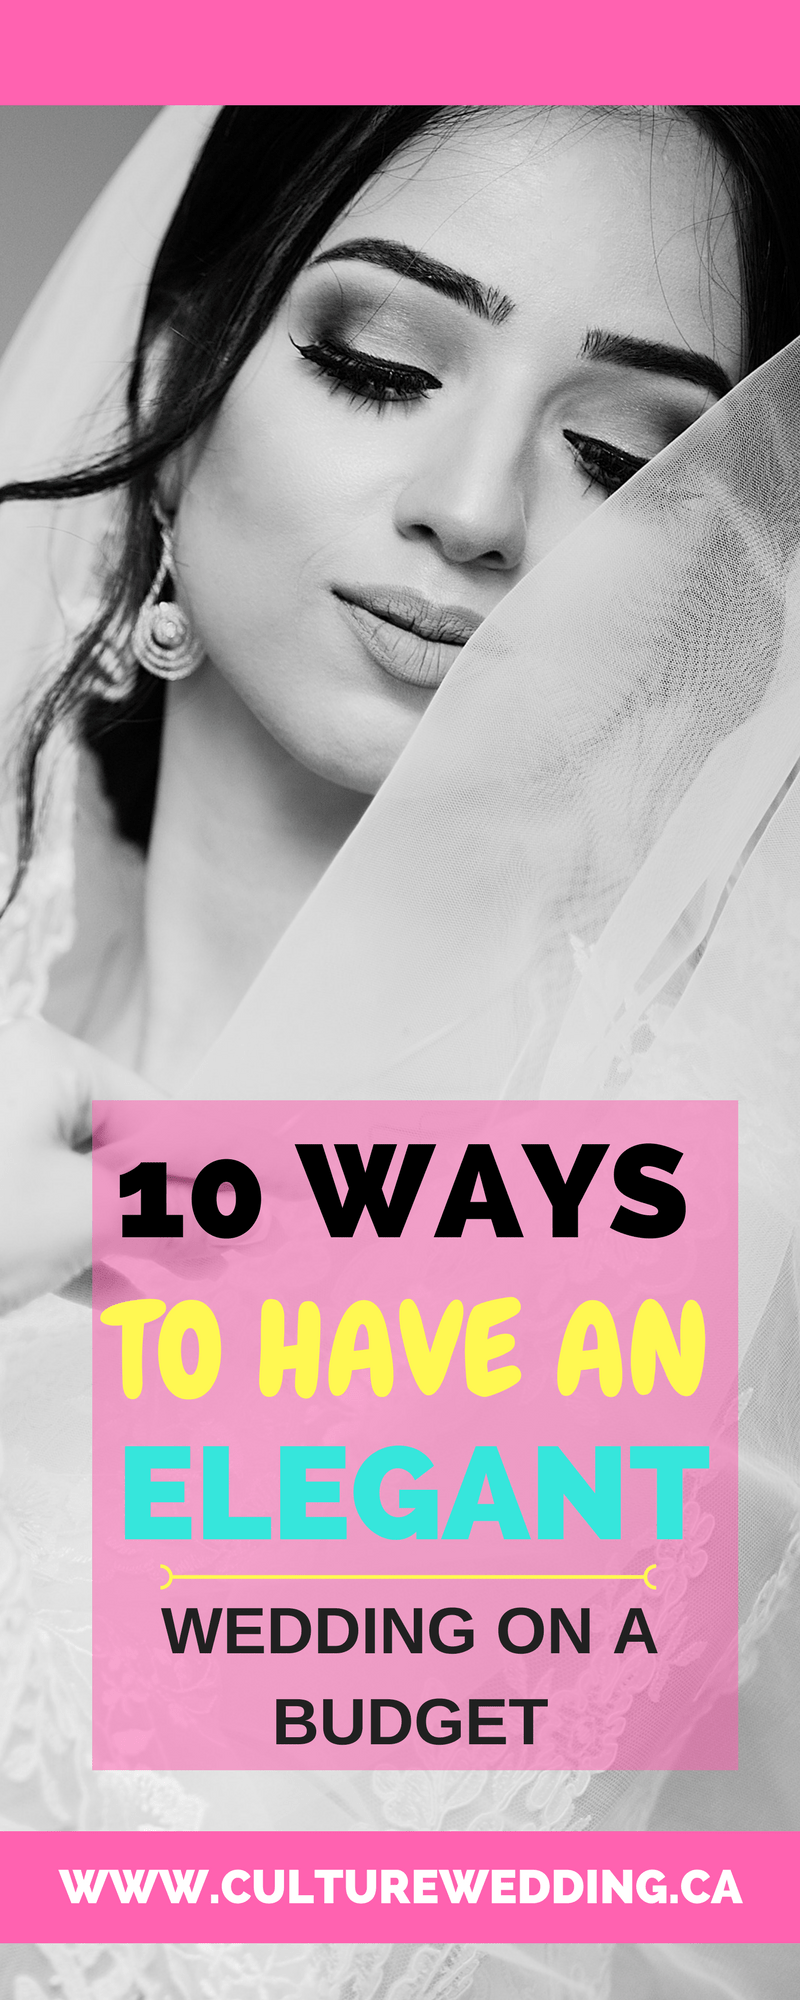 10 ways to have an elegant wedding on a budget yes you can cheap wedding ideas how to plan a wedding on a small budget planning a cheap wedding budget junglespirit Choice Image